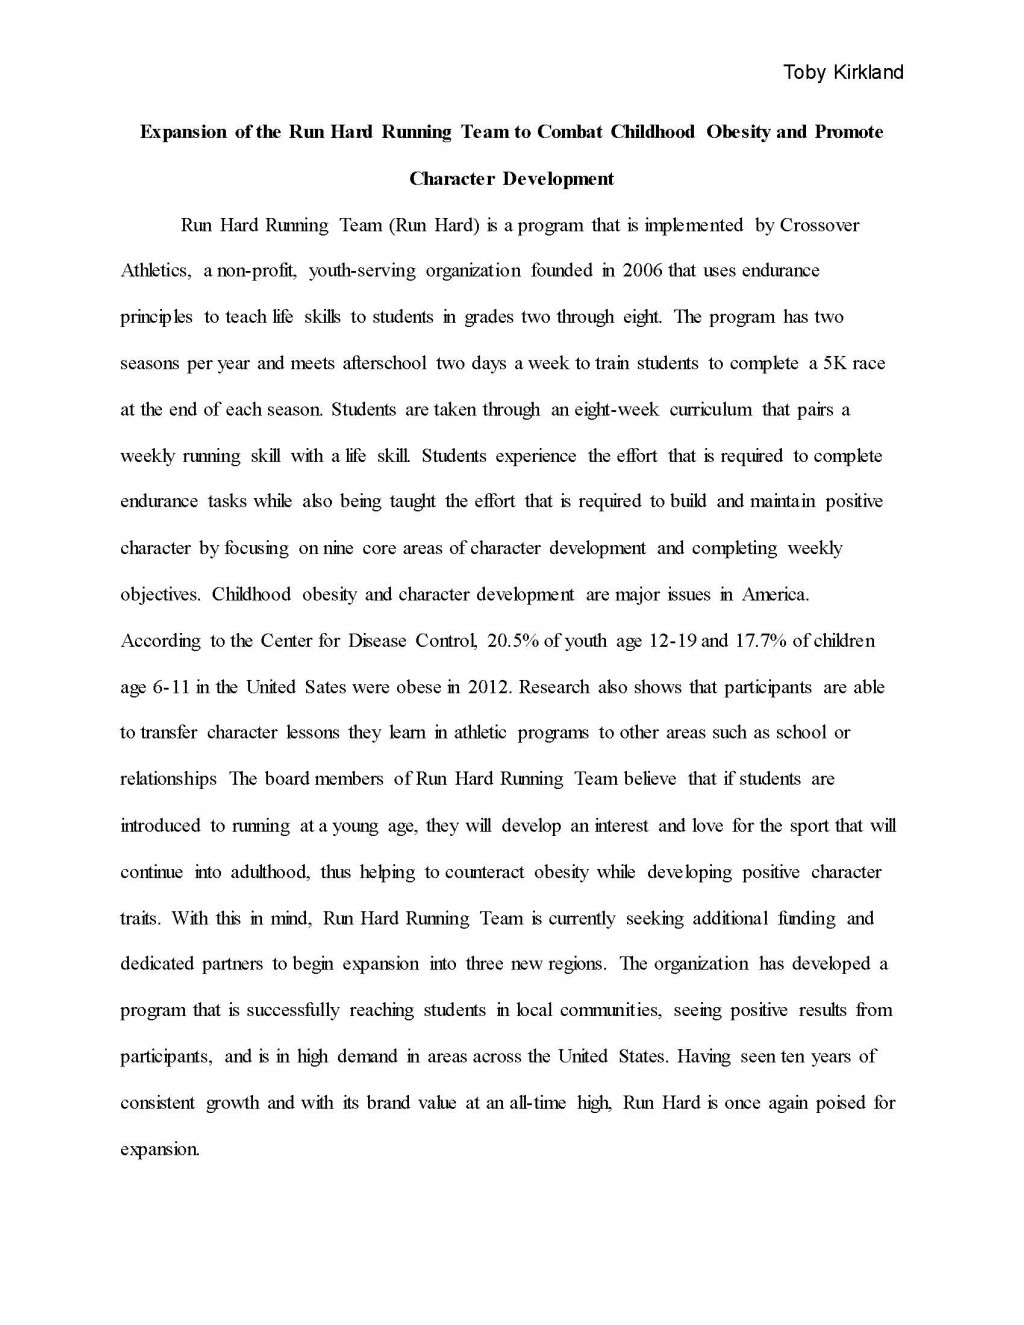 006 Childhood Obesity Research Paper Thesis Statement Toby Kirkland Final Grant Proposal Page 01 Fantastic Large